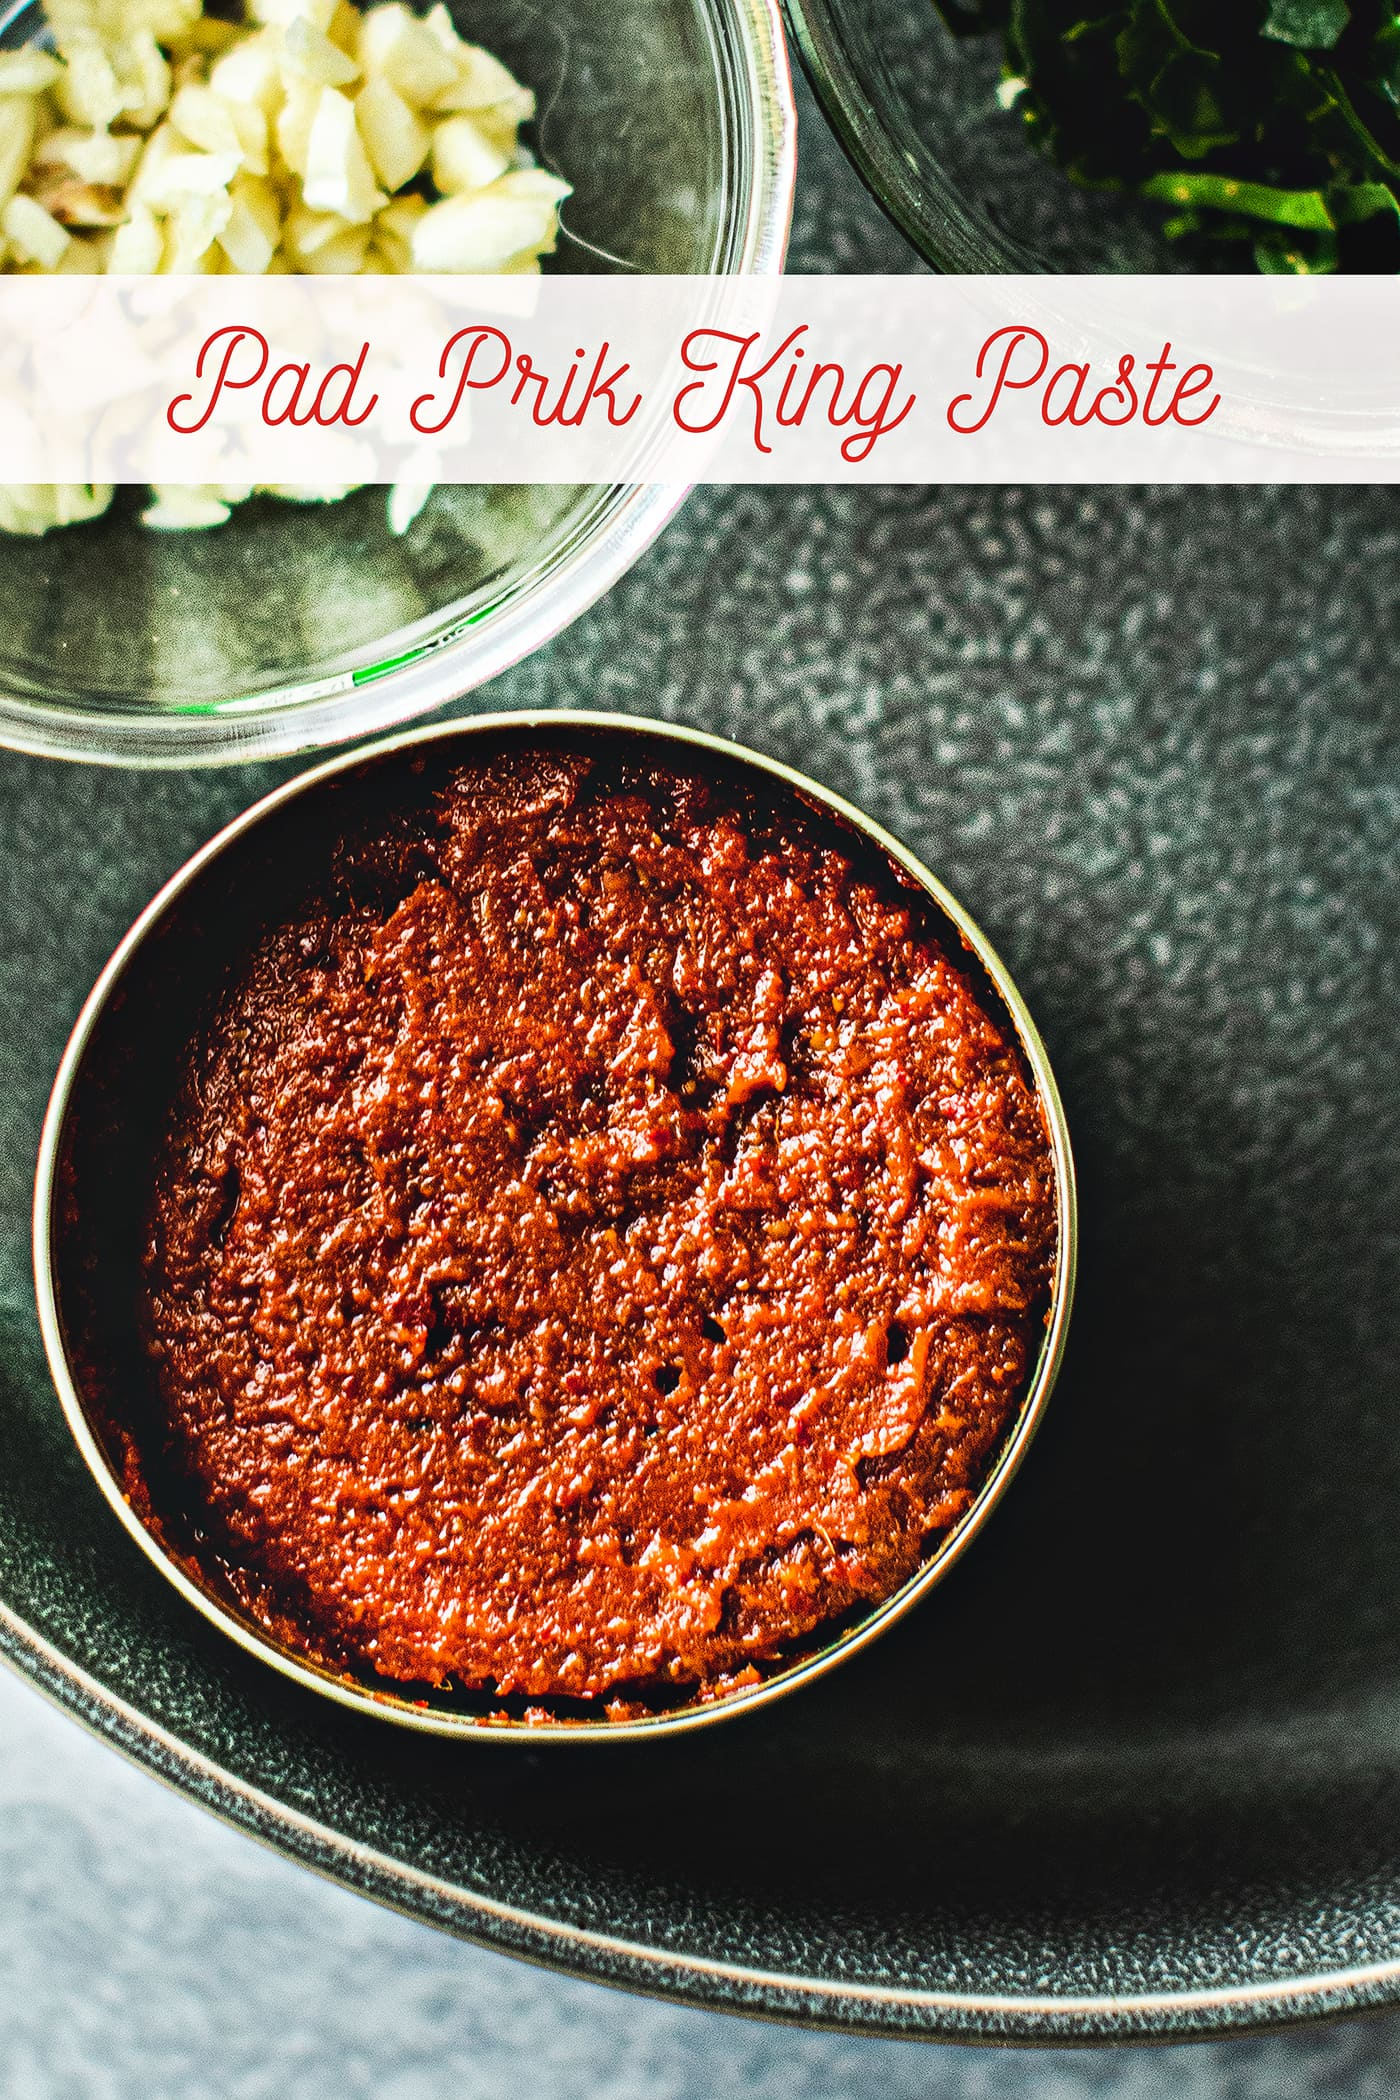 Prik King curry paste is a type of Thai curry paste that is made from red curry and had many fragrant herbs and spices that make the paste a very delicious paste to cook with.  #redcurry #shrimpcurry #thaifood #thairedcurrry #padphrikkhing